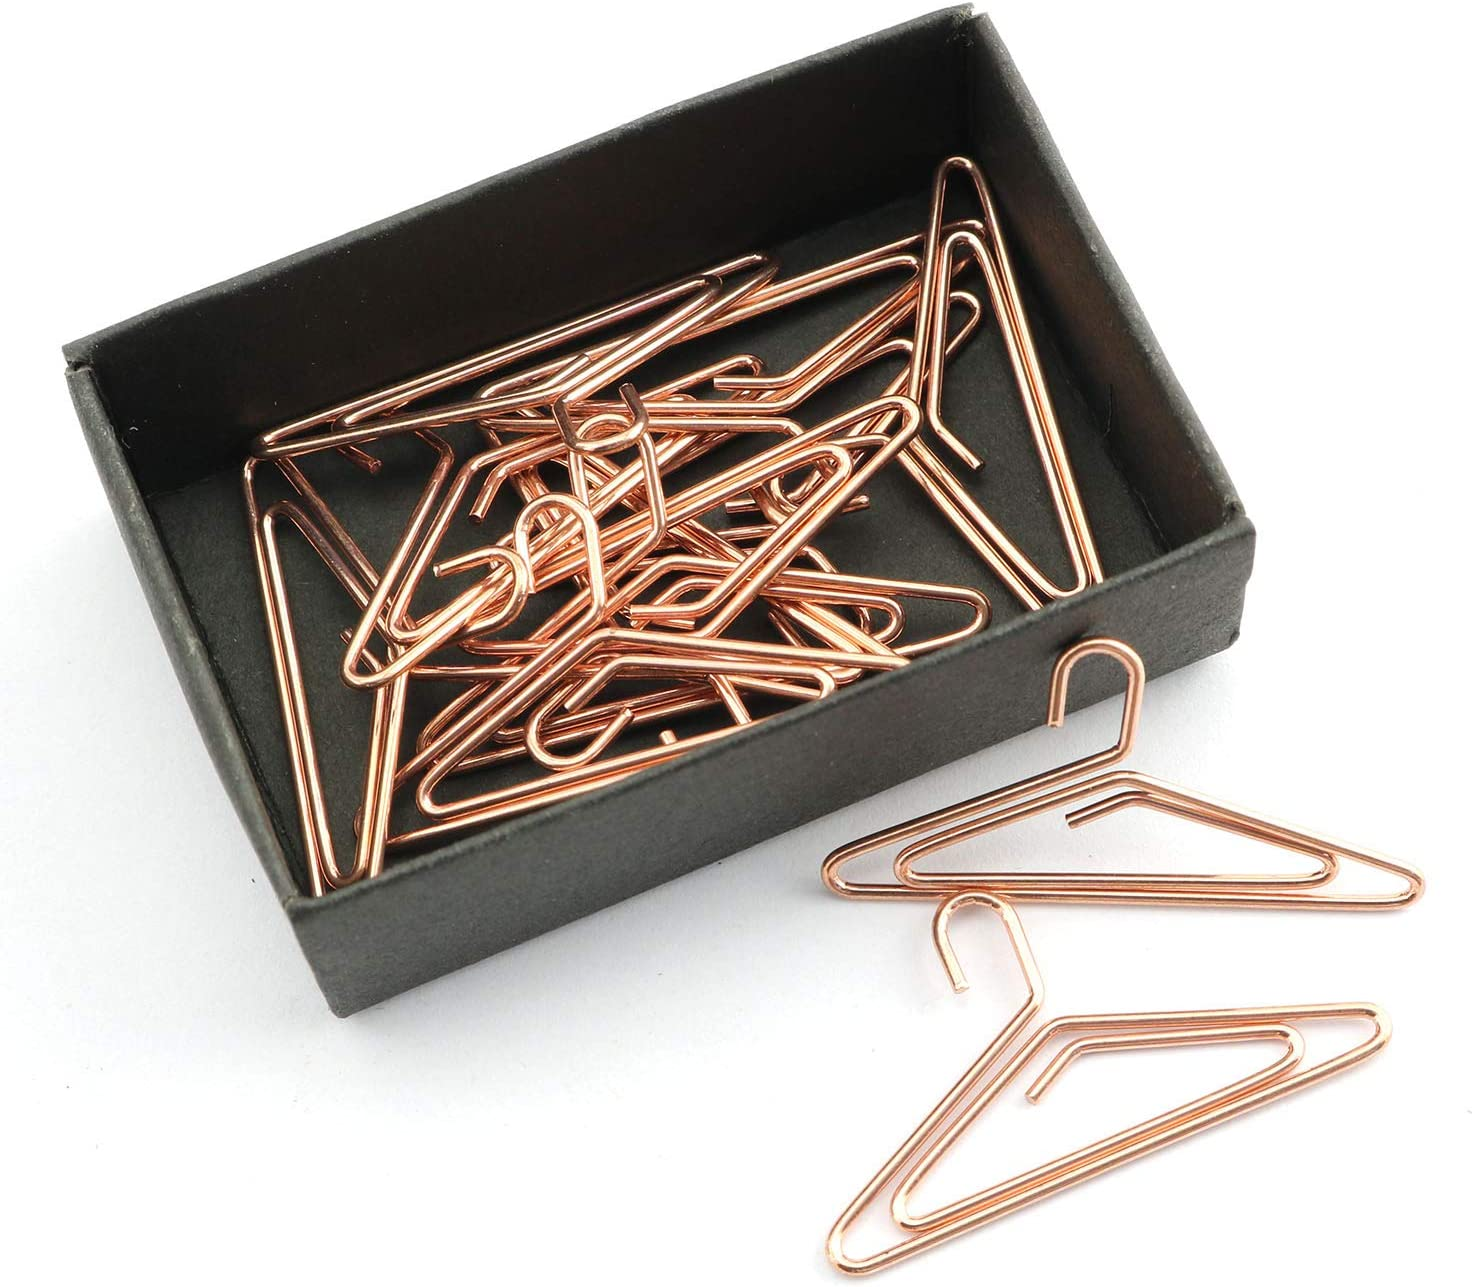 NX Garden Paper Clips 12PCS Hanger Shape Rose Gold Note Clips Photo Sign Clips Metal WireBookmark Clips for Home and Office